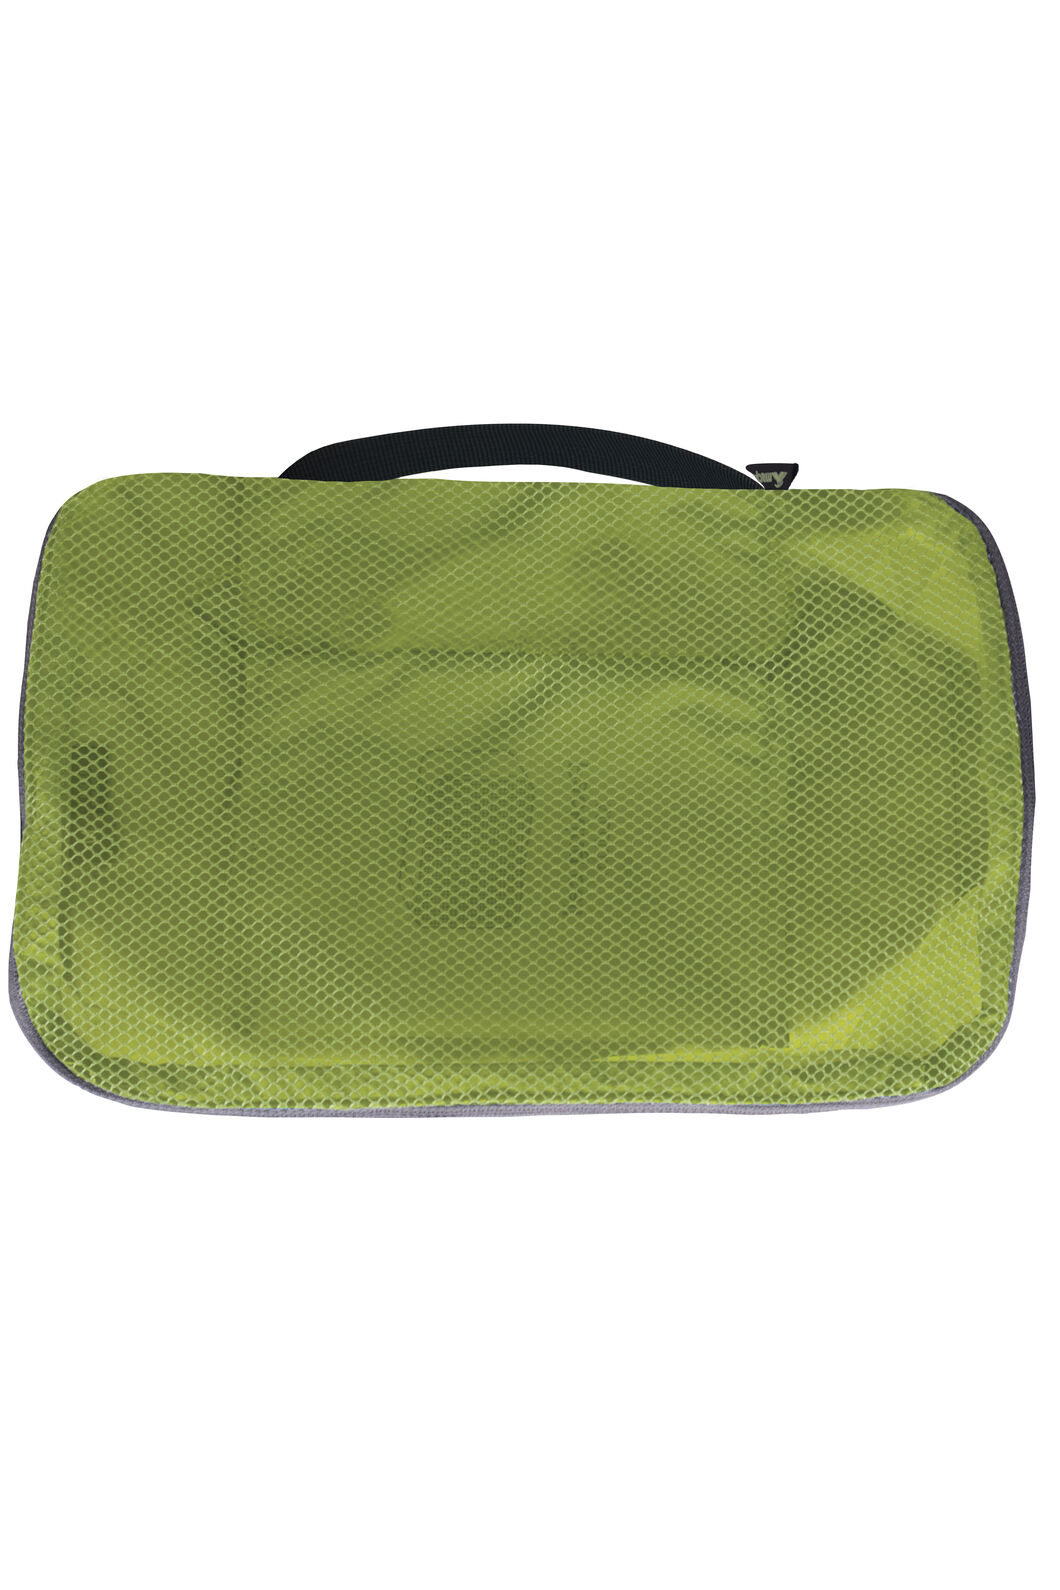 Macpac Large Packing Cell, Apple, hi-res